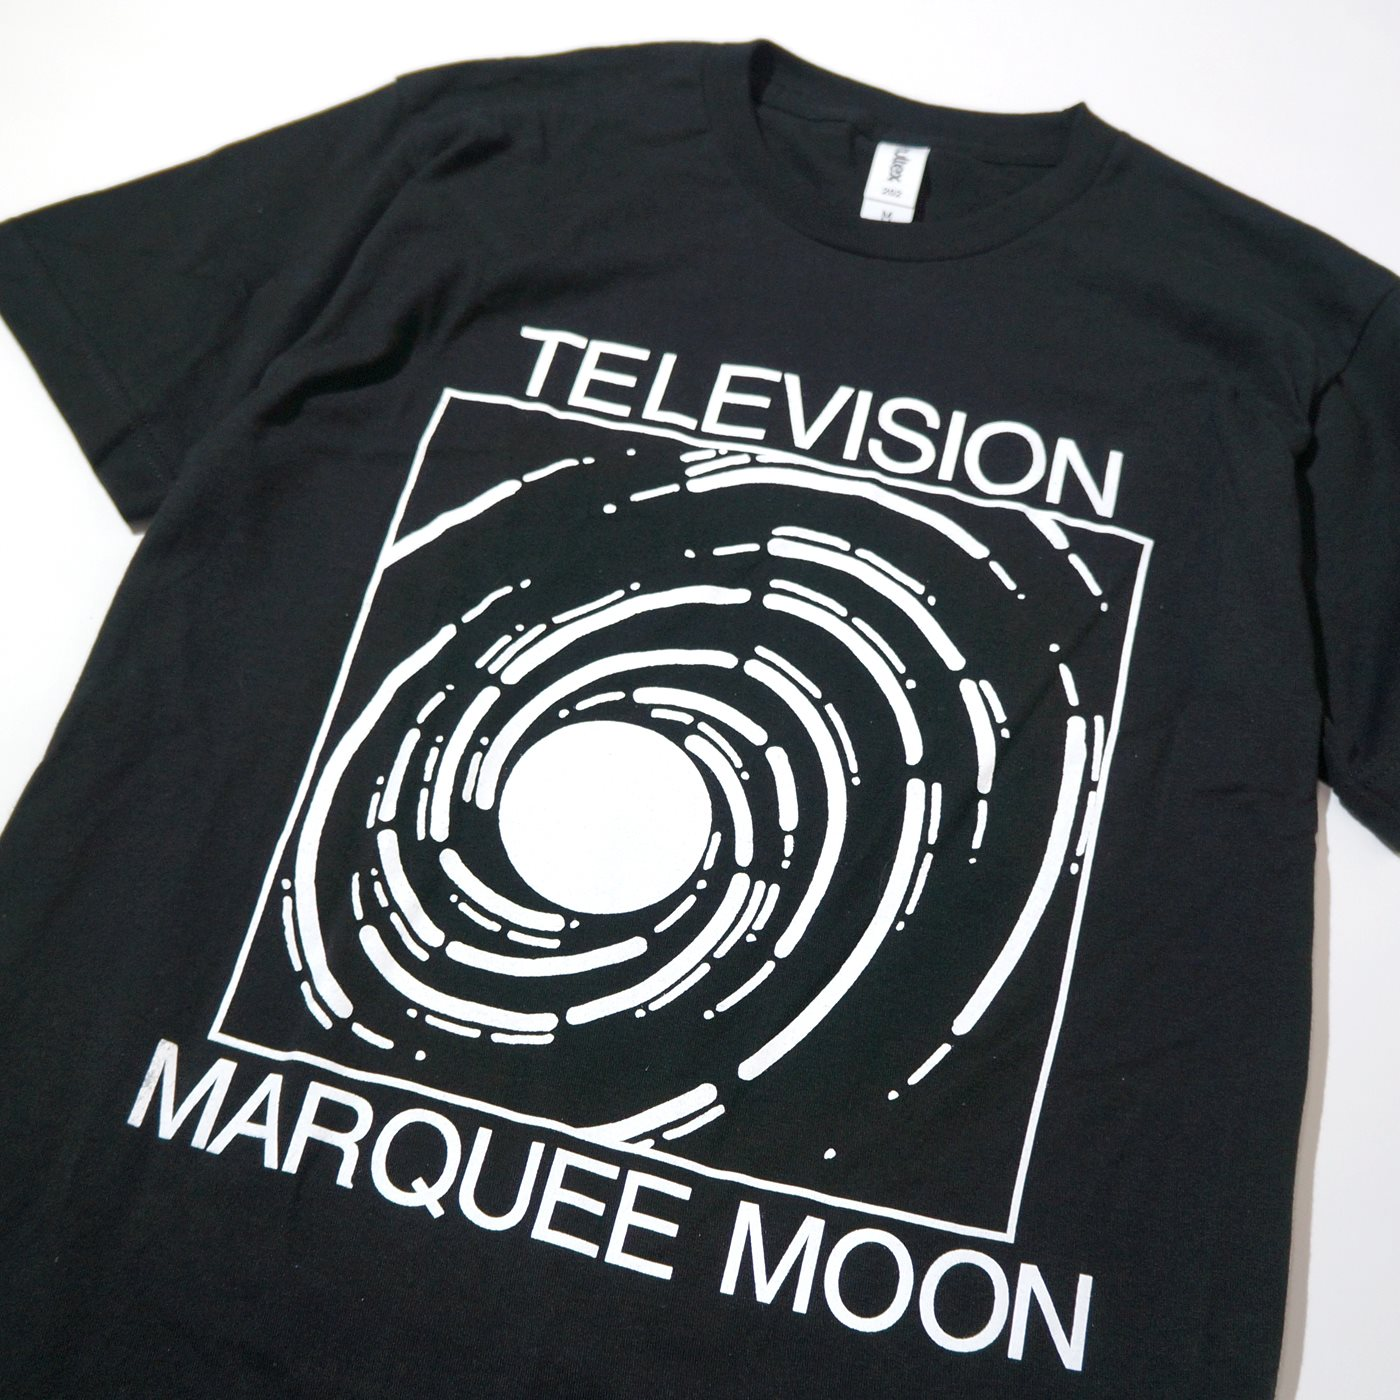 TELEVISION Tシャツ Marquee Moon-Black